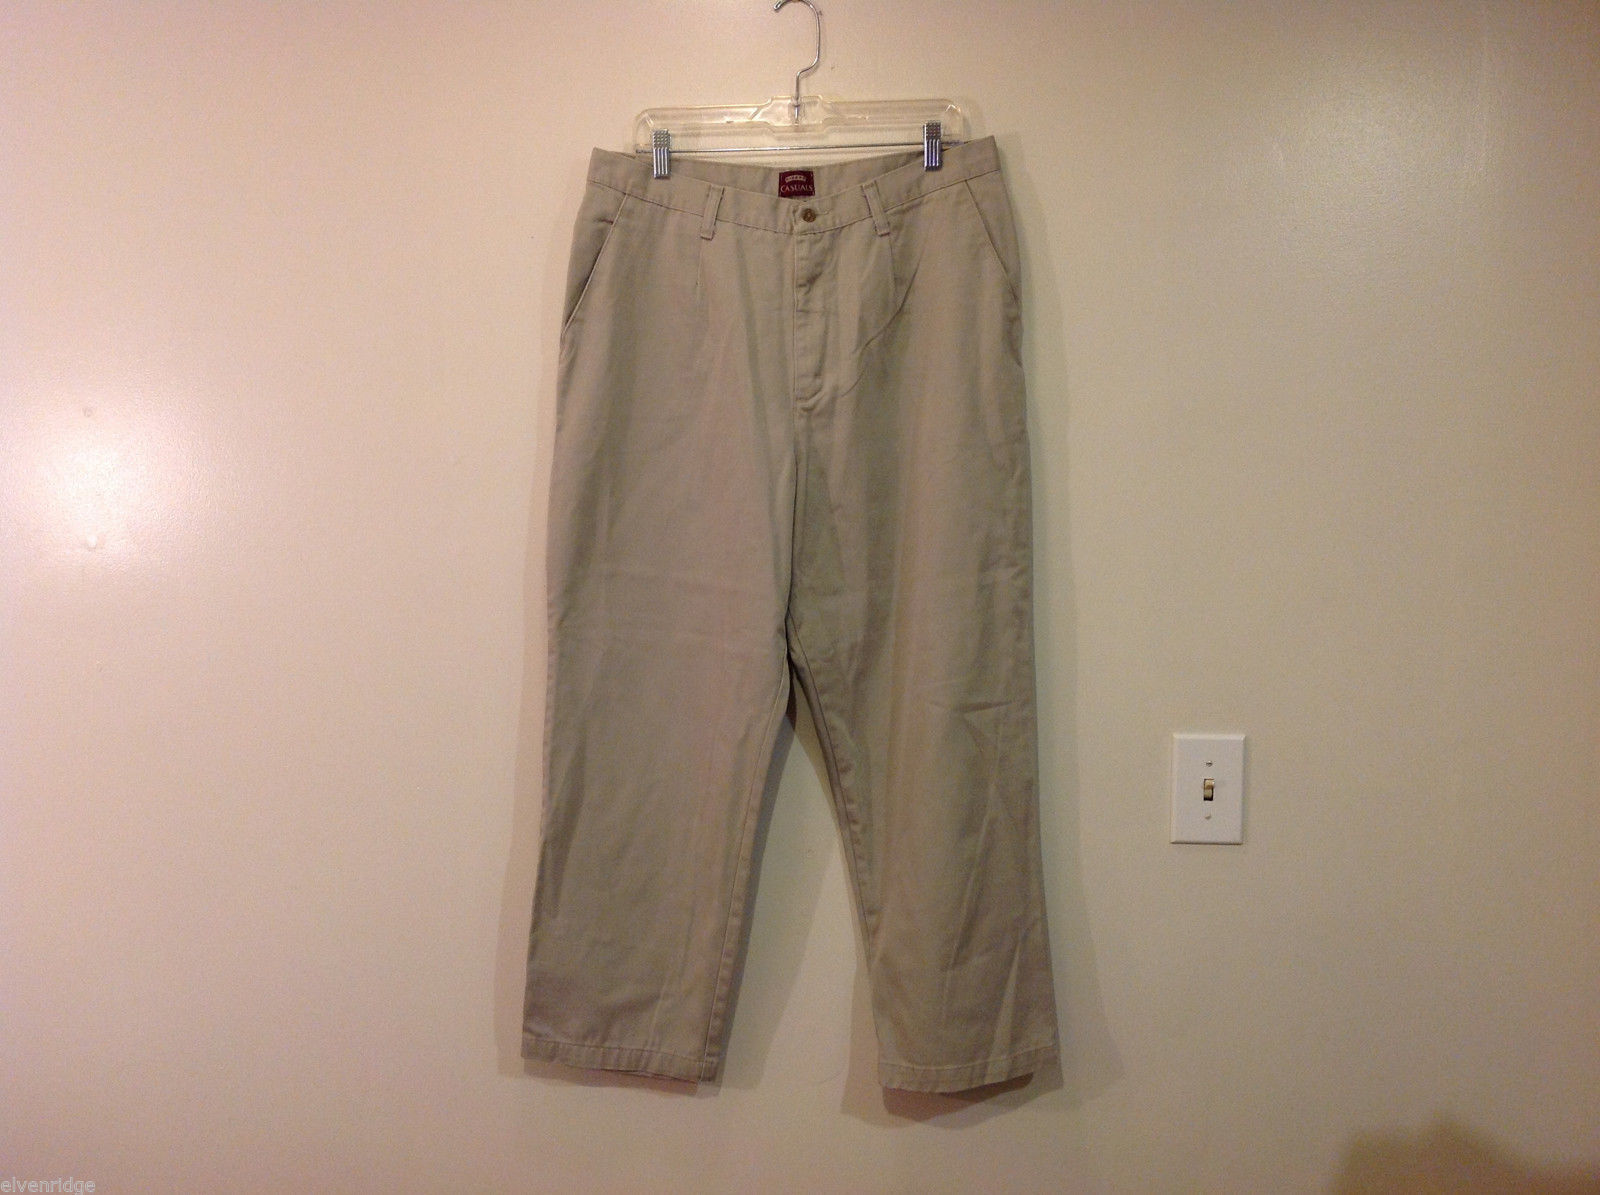 Riders Casual Petite Light Gray 100% Cotton Pants, Size 18